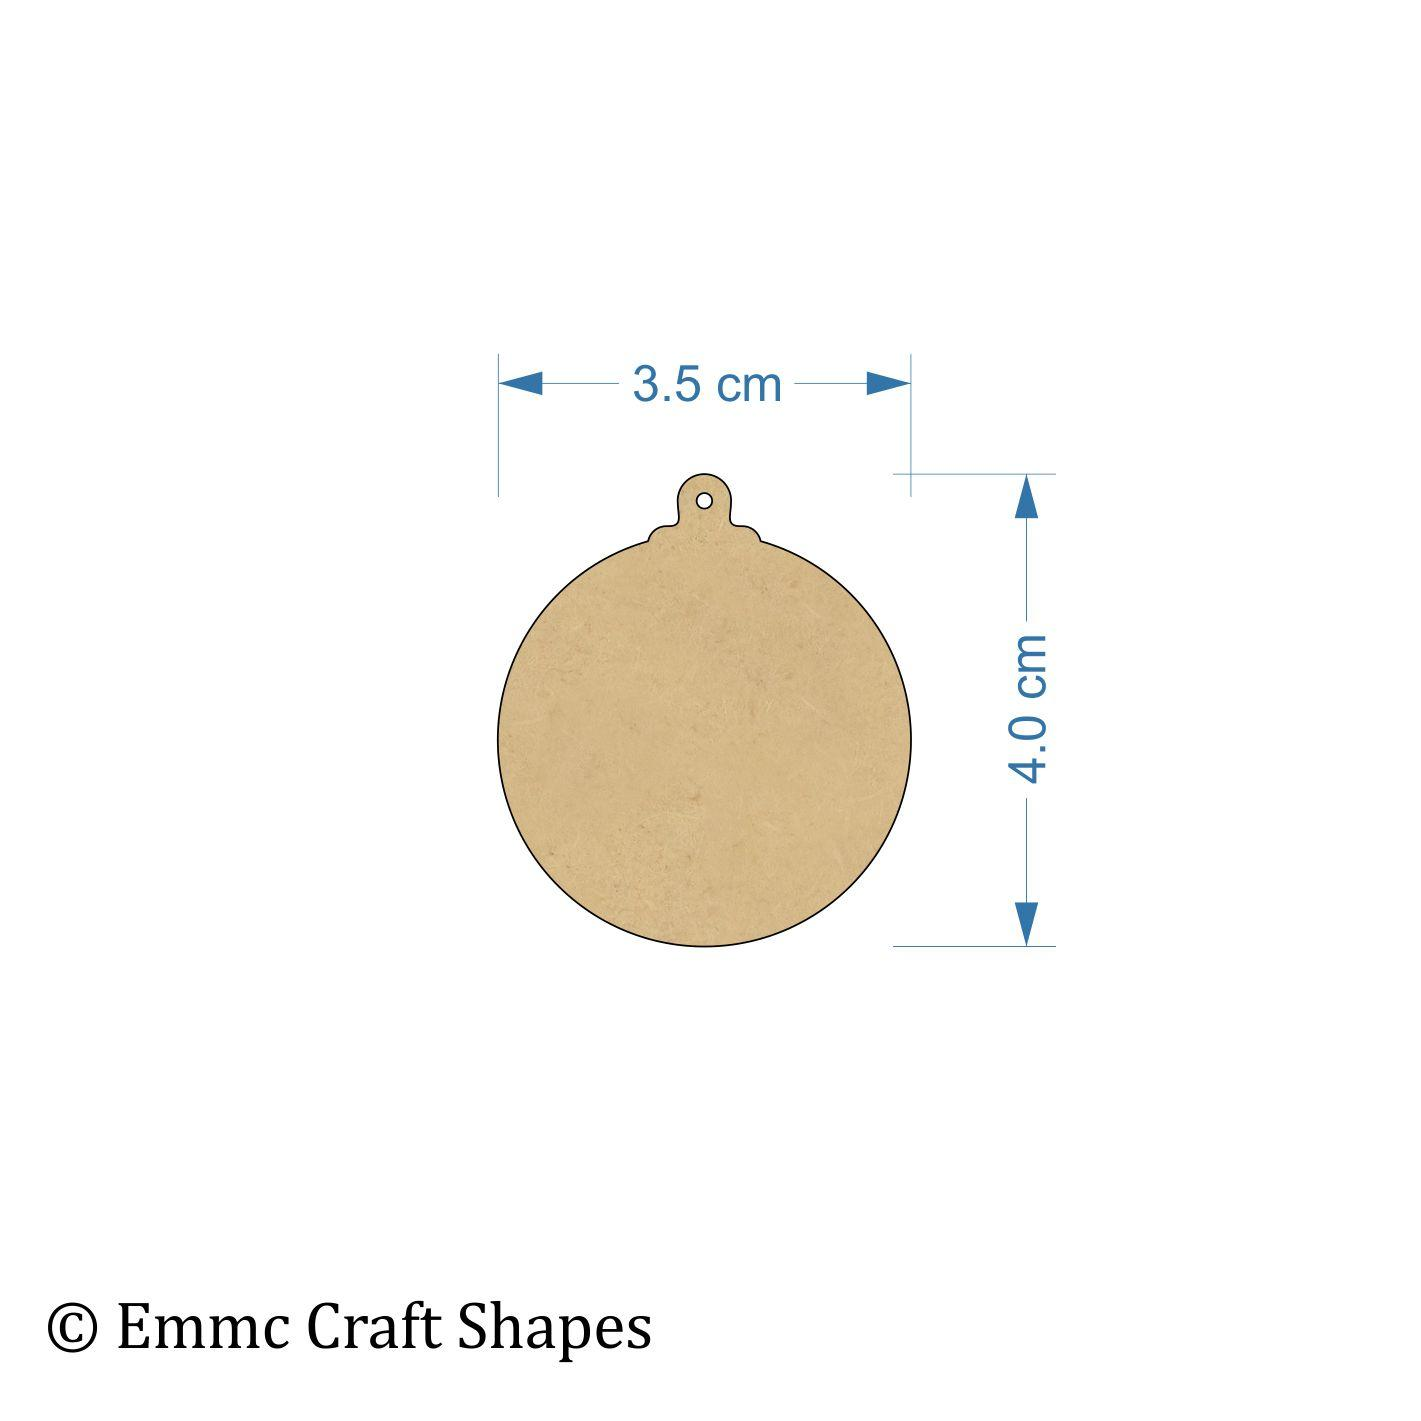 3mm MDF bauble cut outs - 4 cm with hanging hole